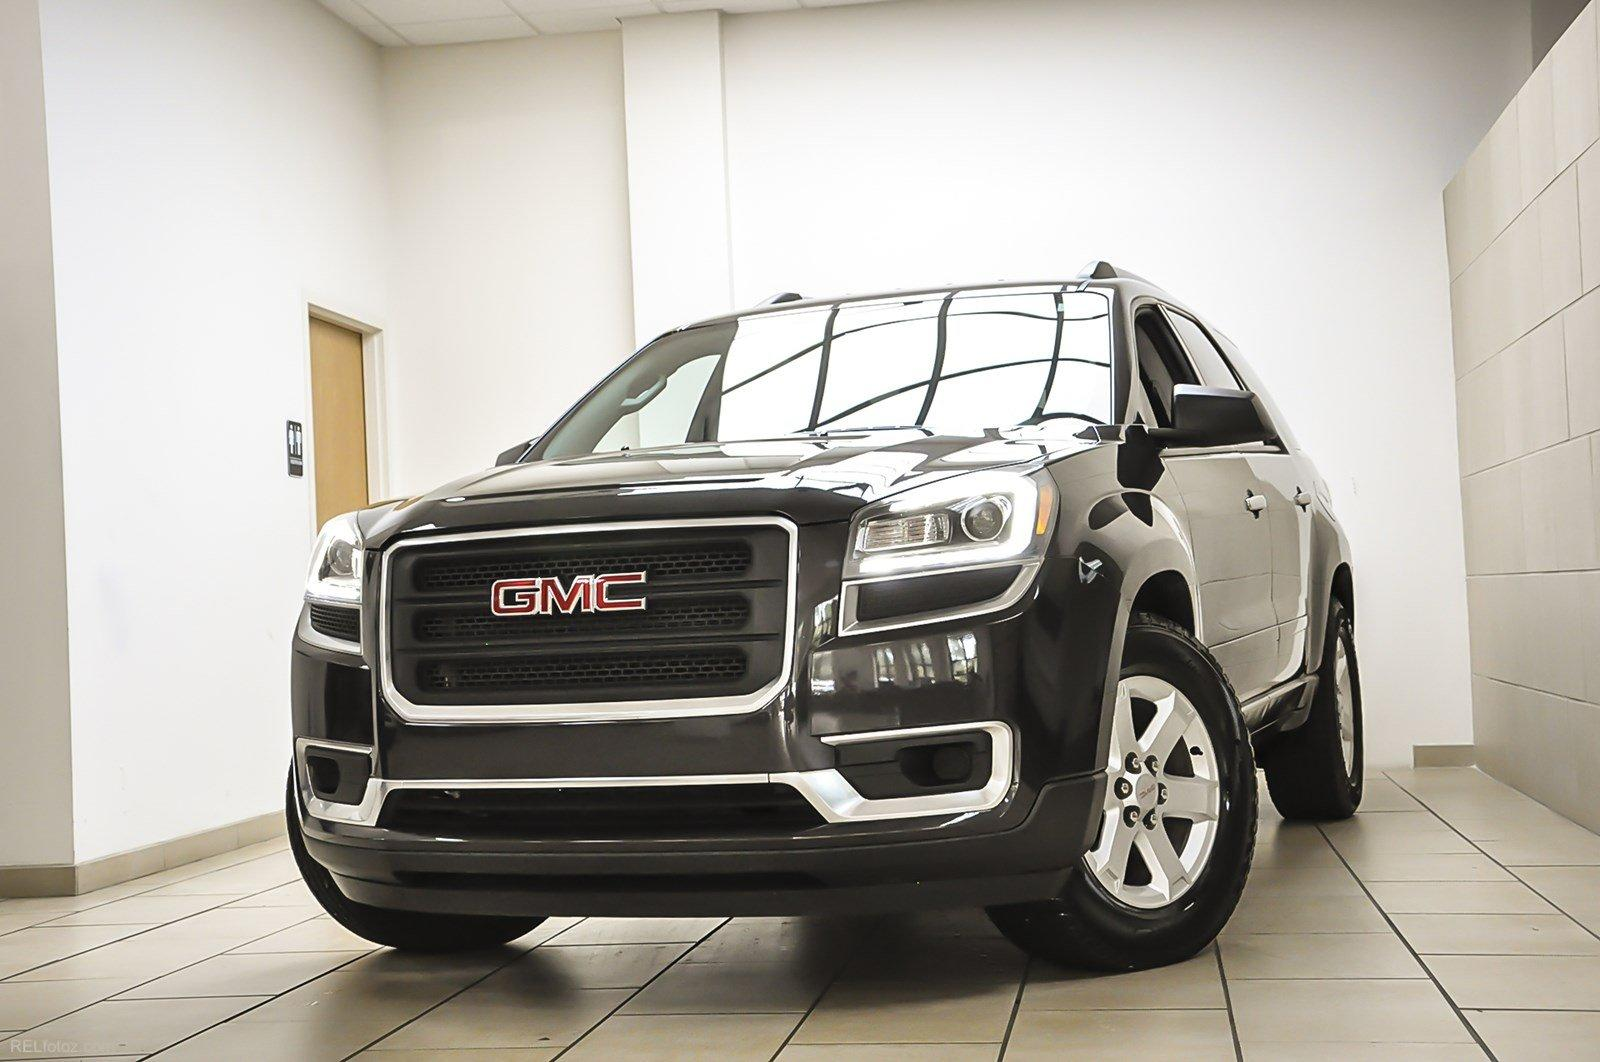 2015 Gmc Acadia For Sale >> 2015 GMC Acadia SLE Stock # 288853 for sale near Sandy Springs, GA | GA GMC Dealer